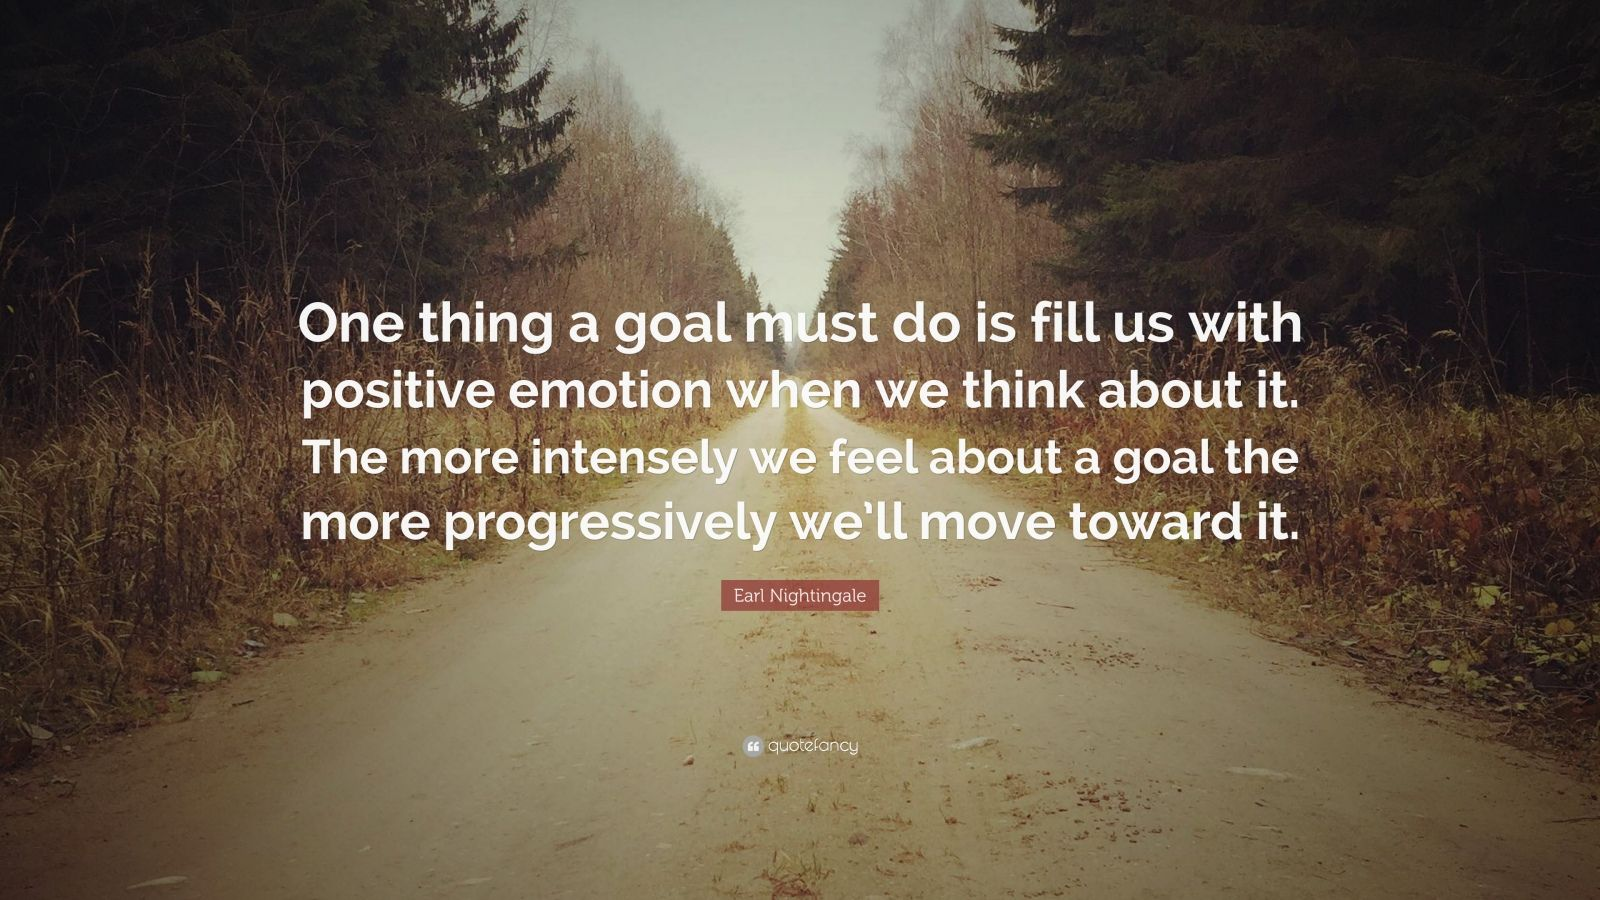 """Earl Nightingale Quote: """"One thing a goal must do is fill us with positive emotion when we think about it. The more intensely we feel about a goal the more progressively we'll move toward it."""""""